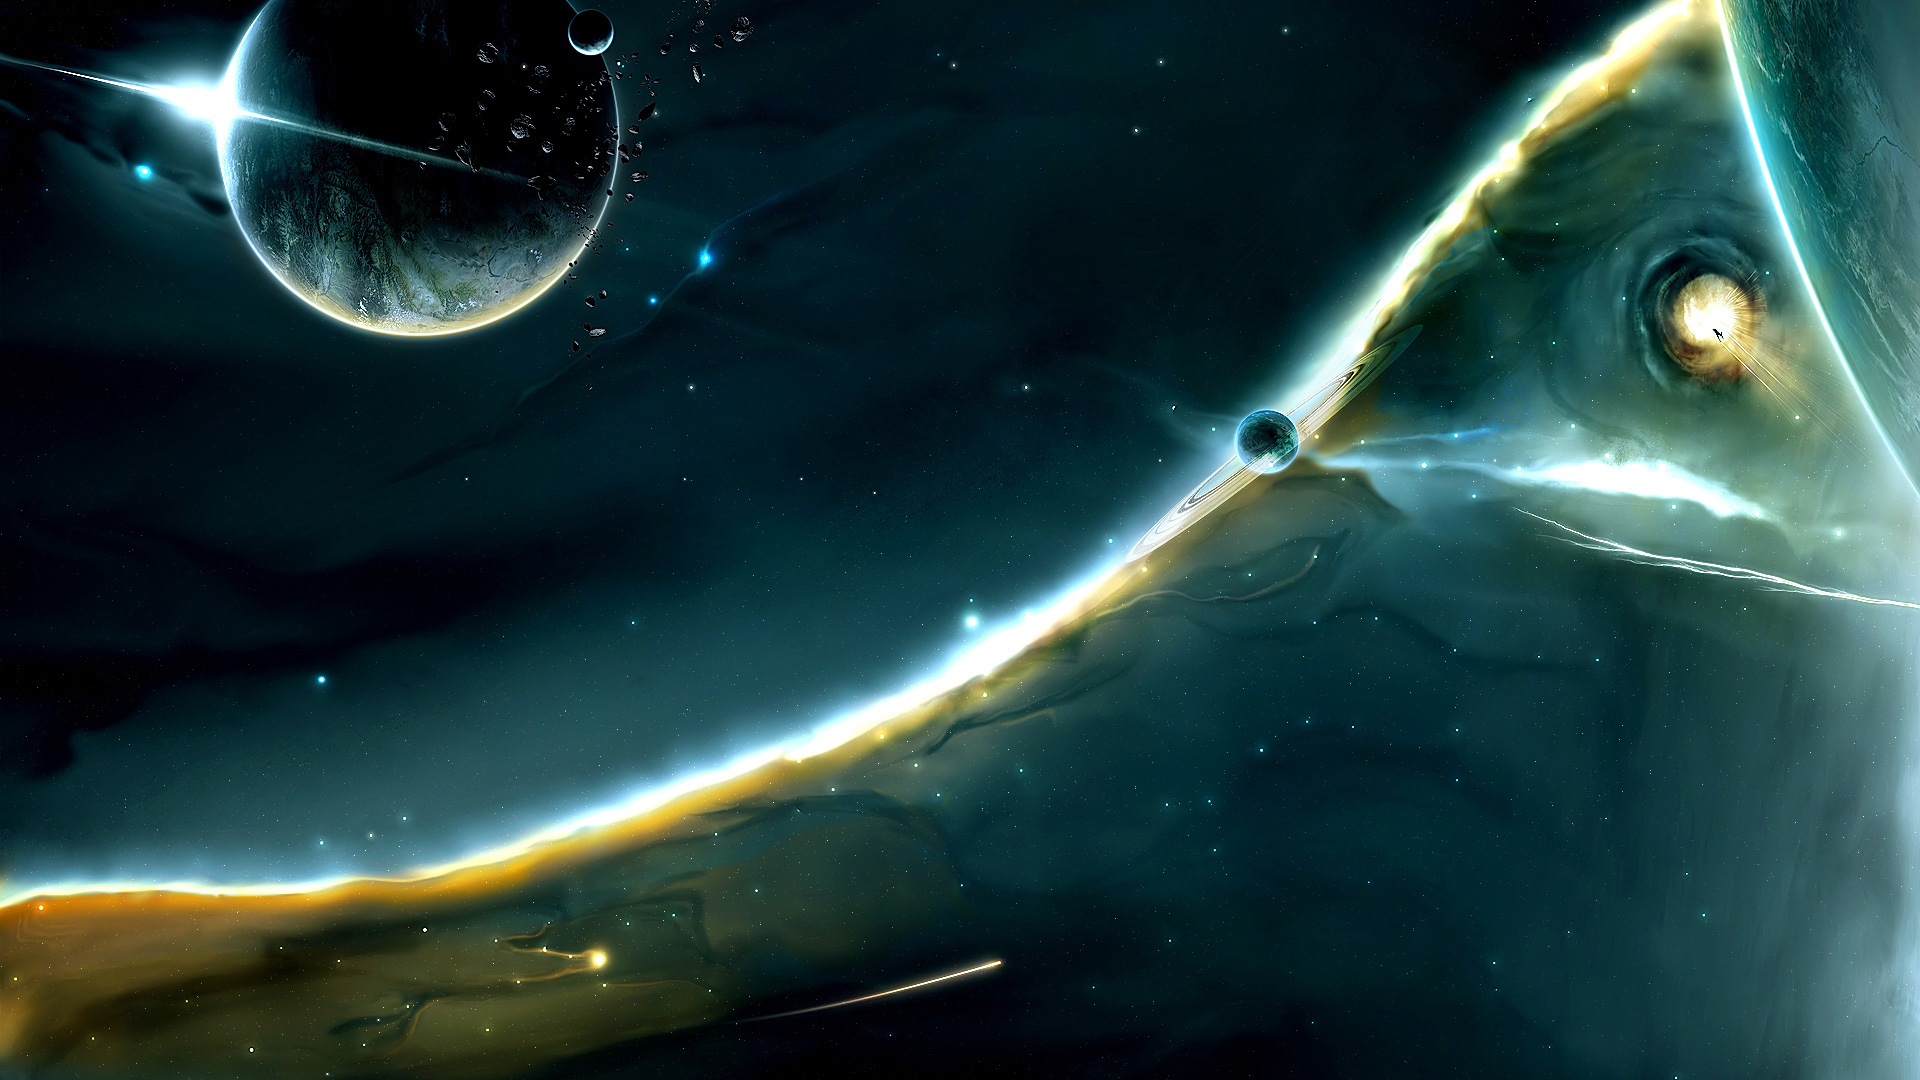 Space wallpaper Full HD Star Planet Sci Fi 1920x1080